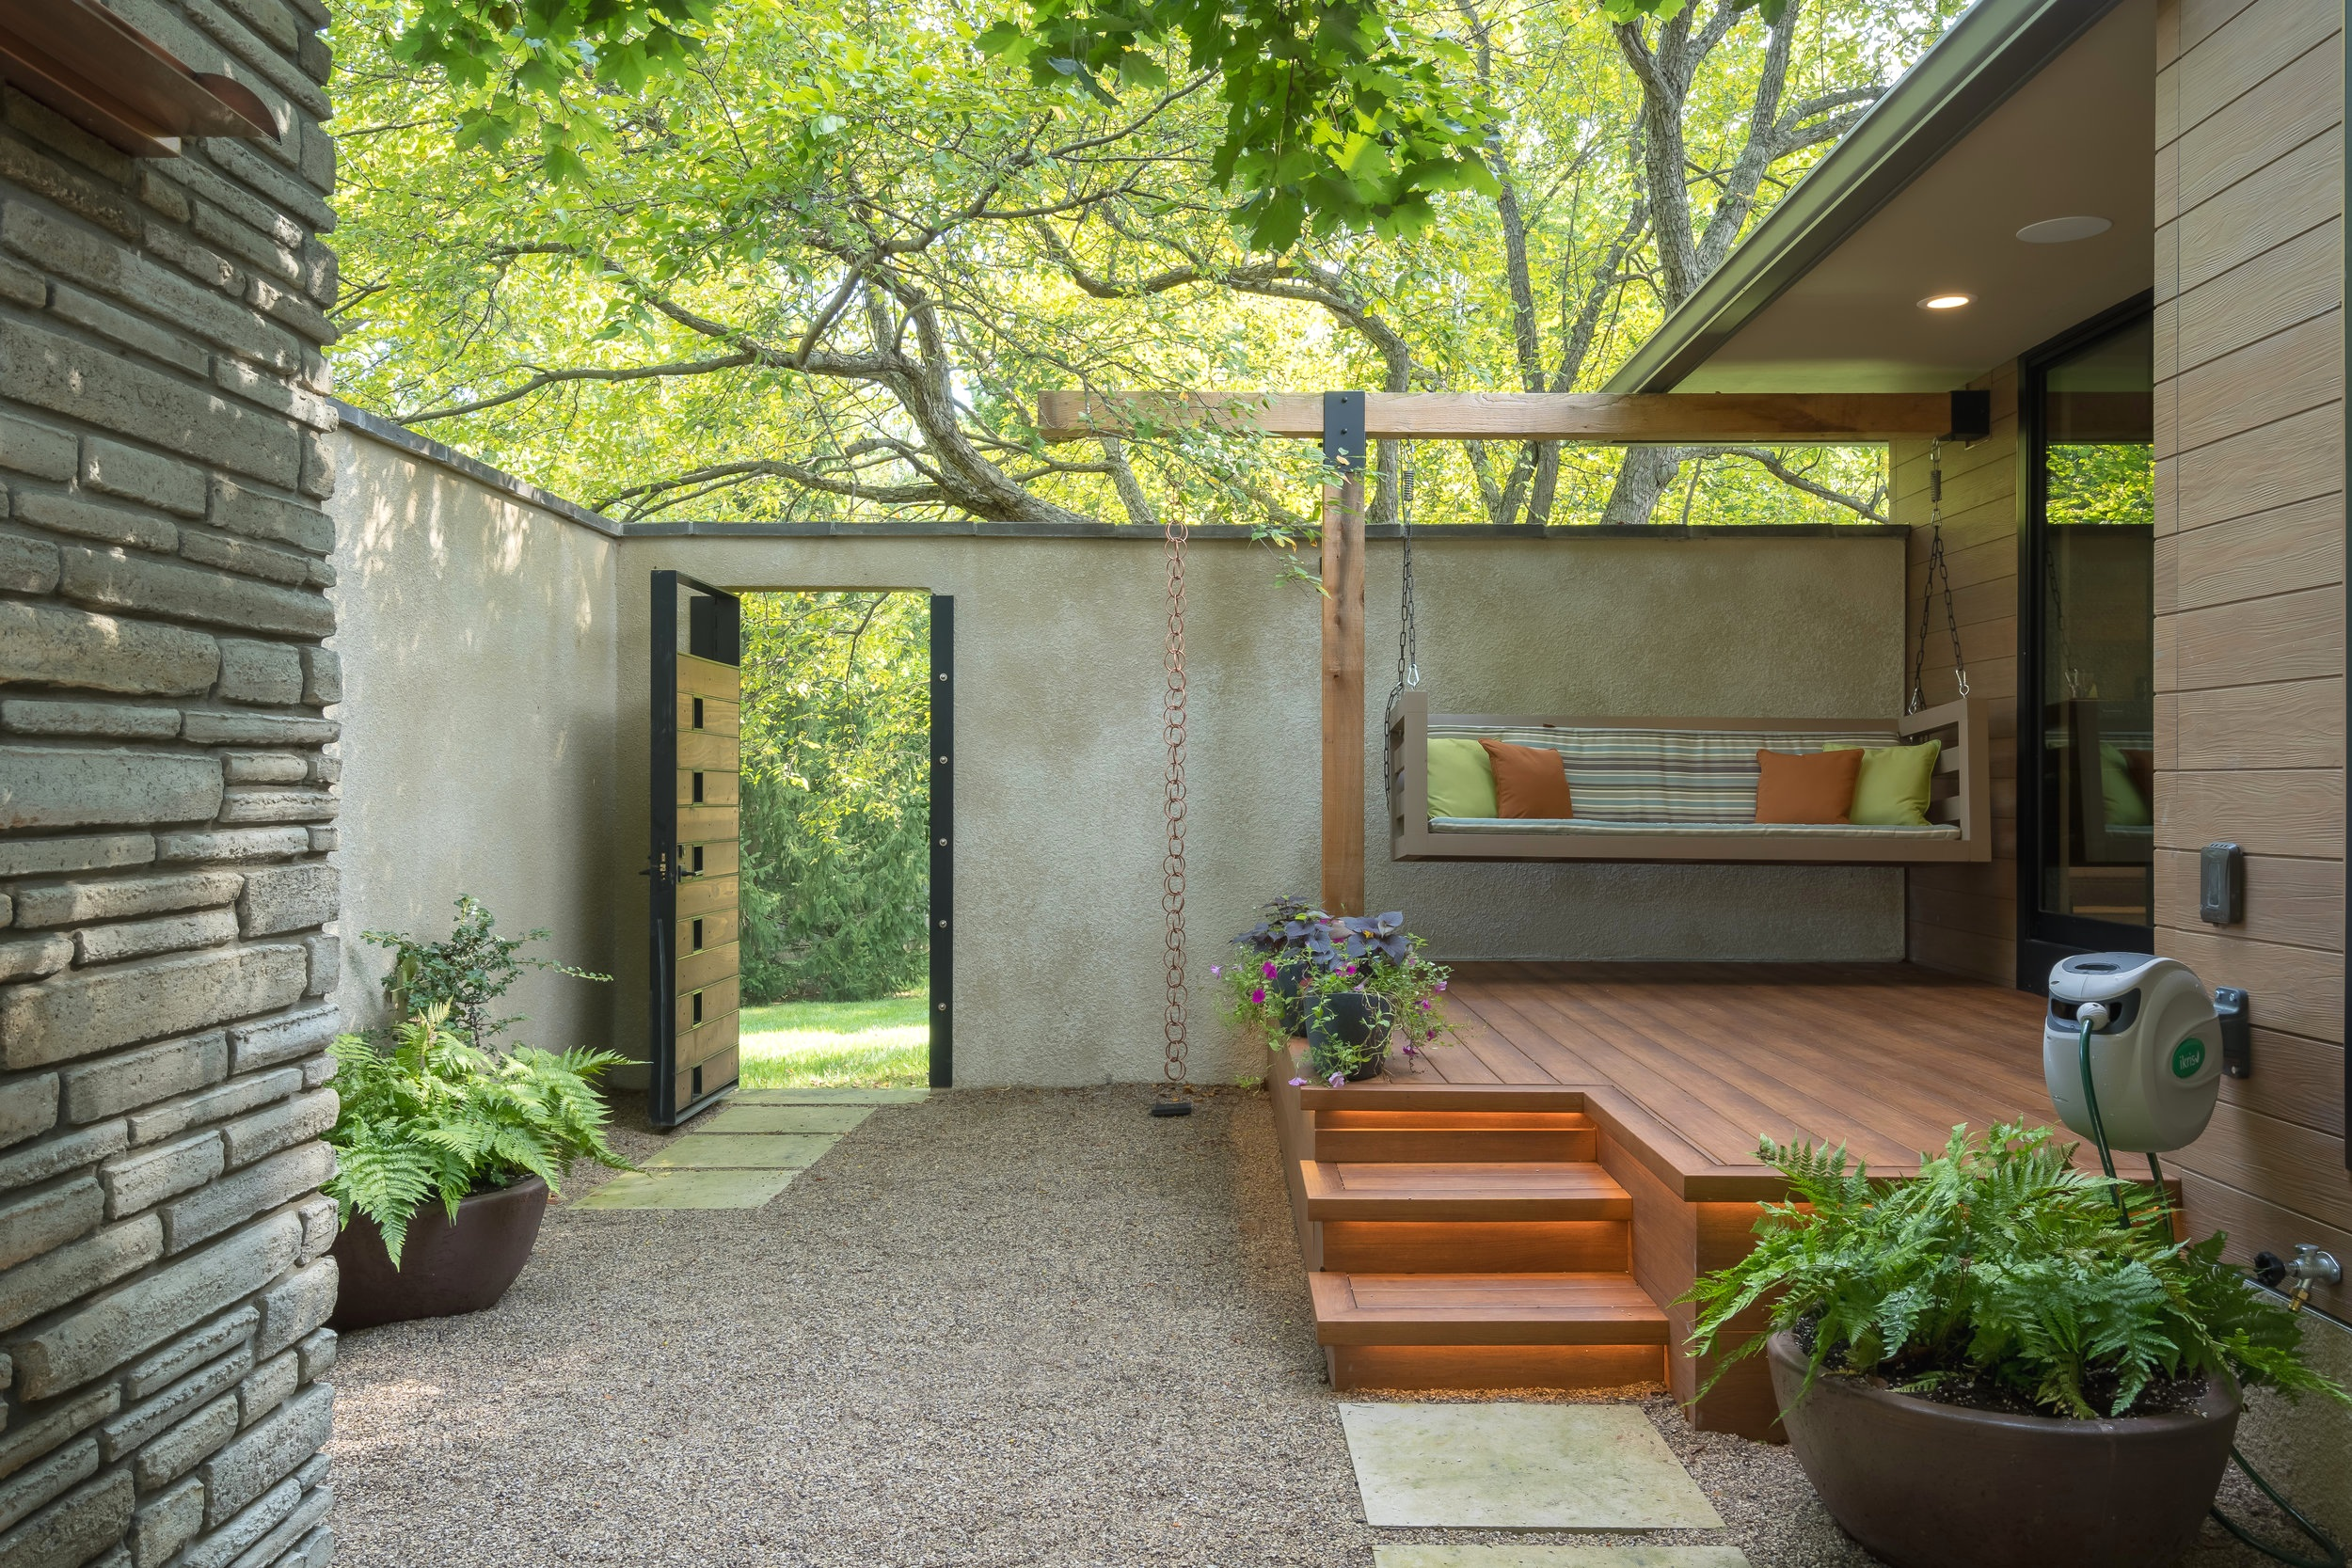 Private Courtyard designed and installed by The Cleary Company